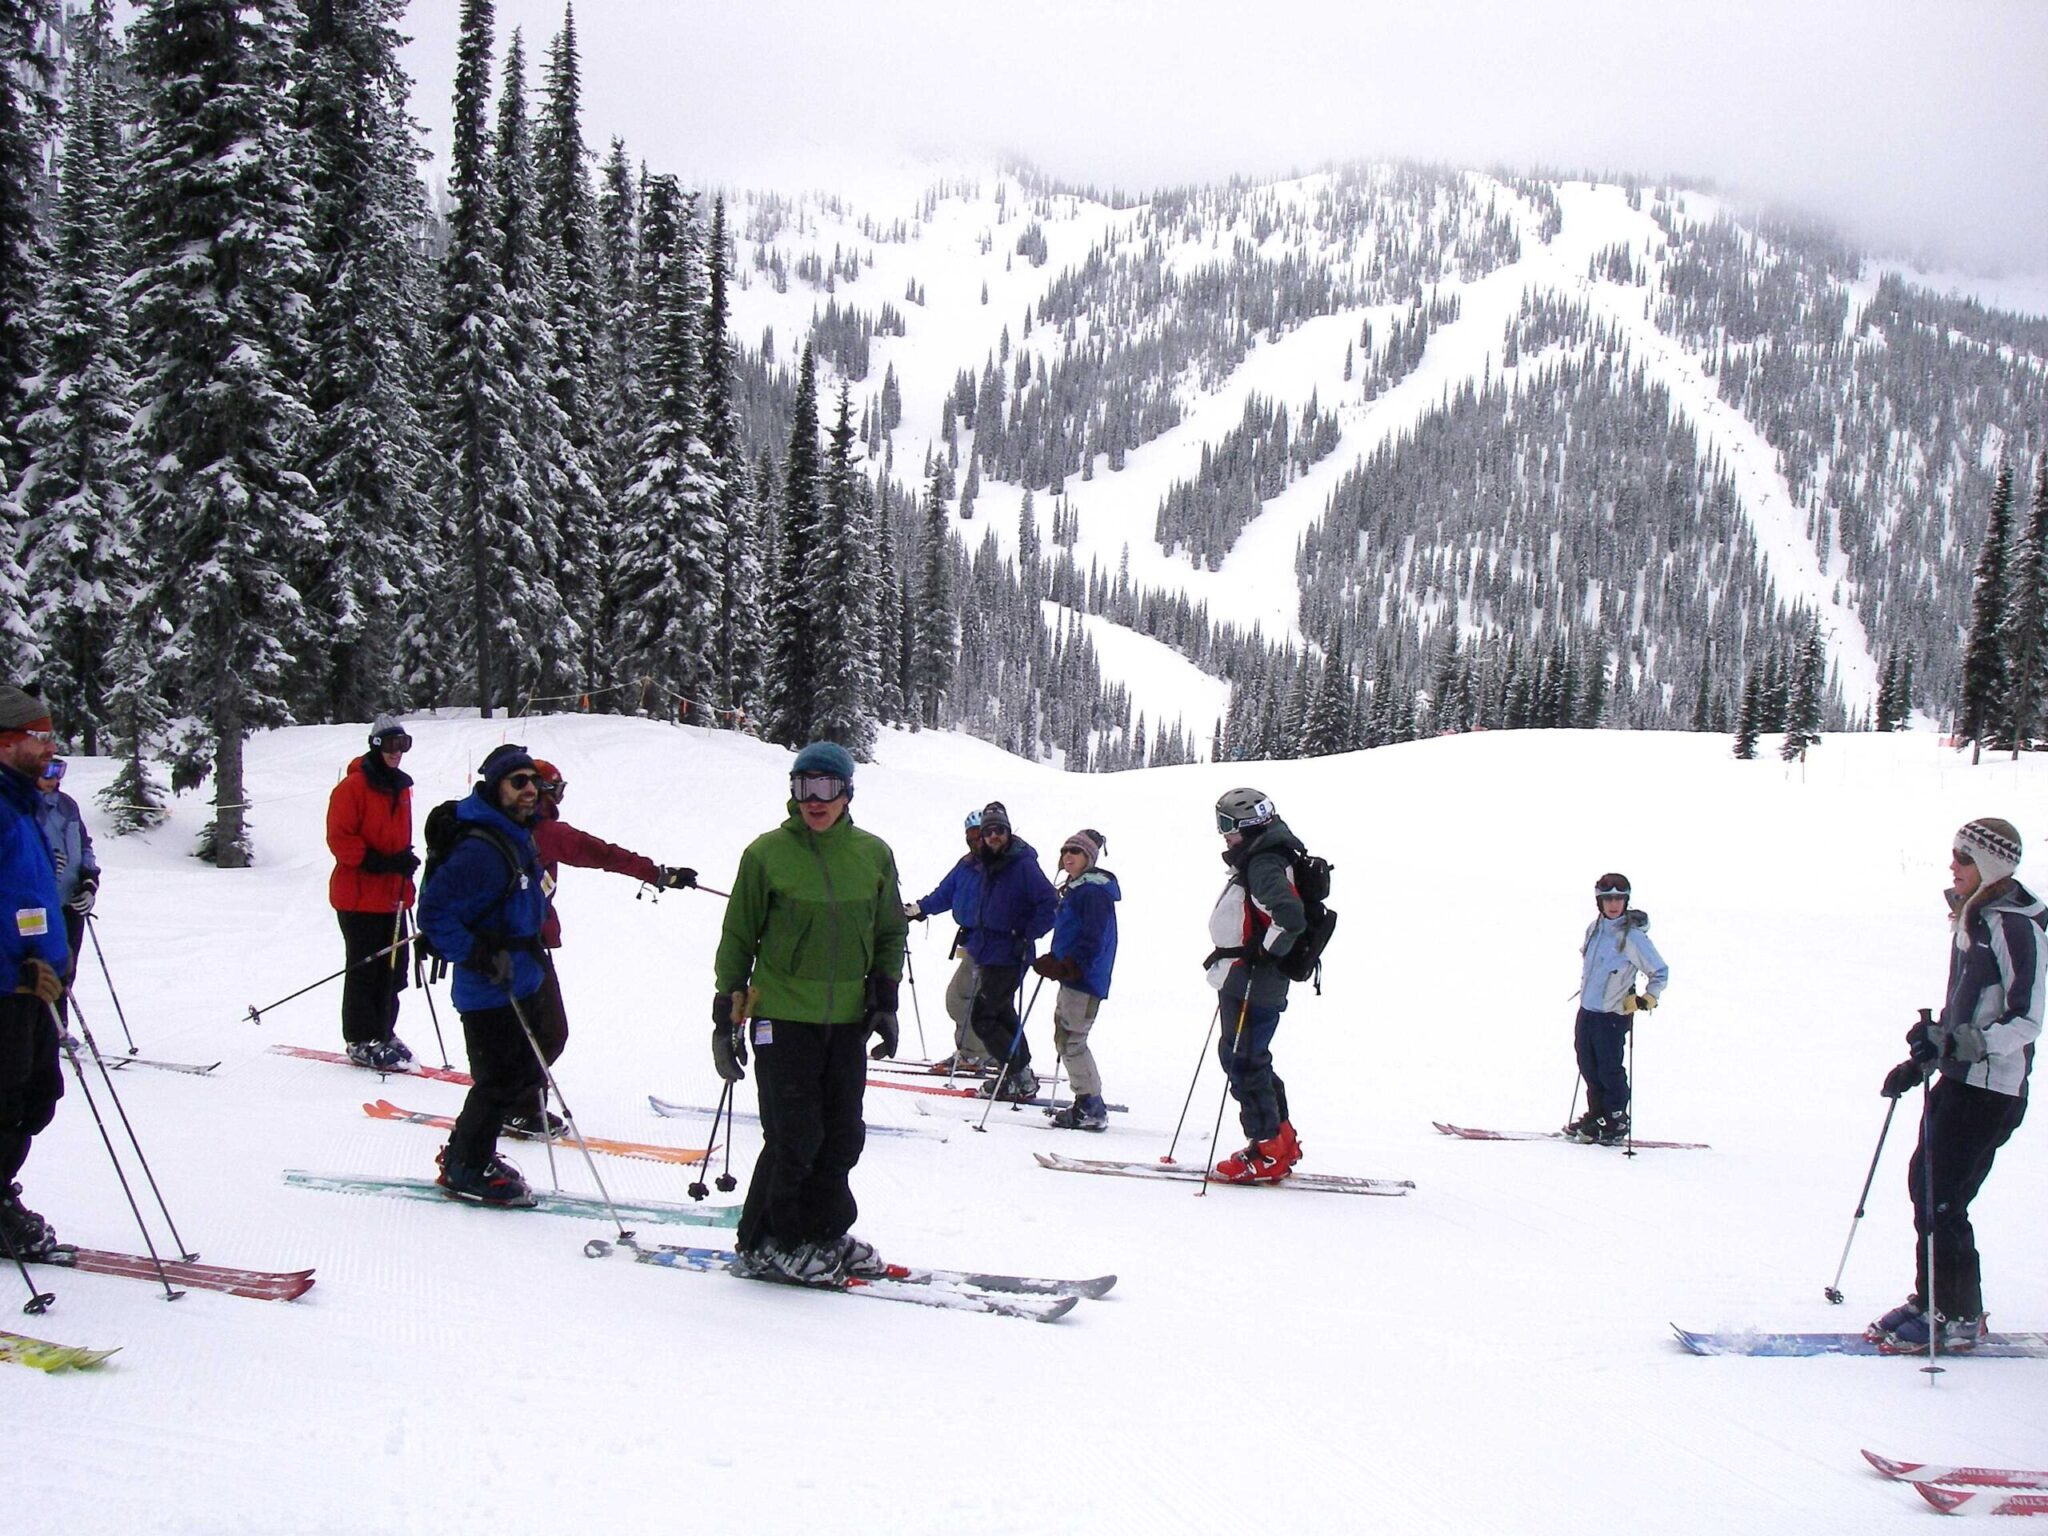 Ski lessons at Whitewater Ski Resort.